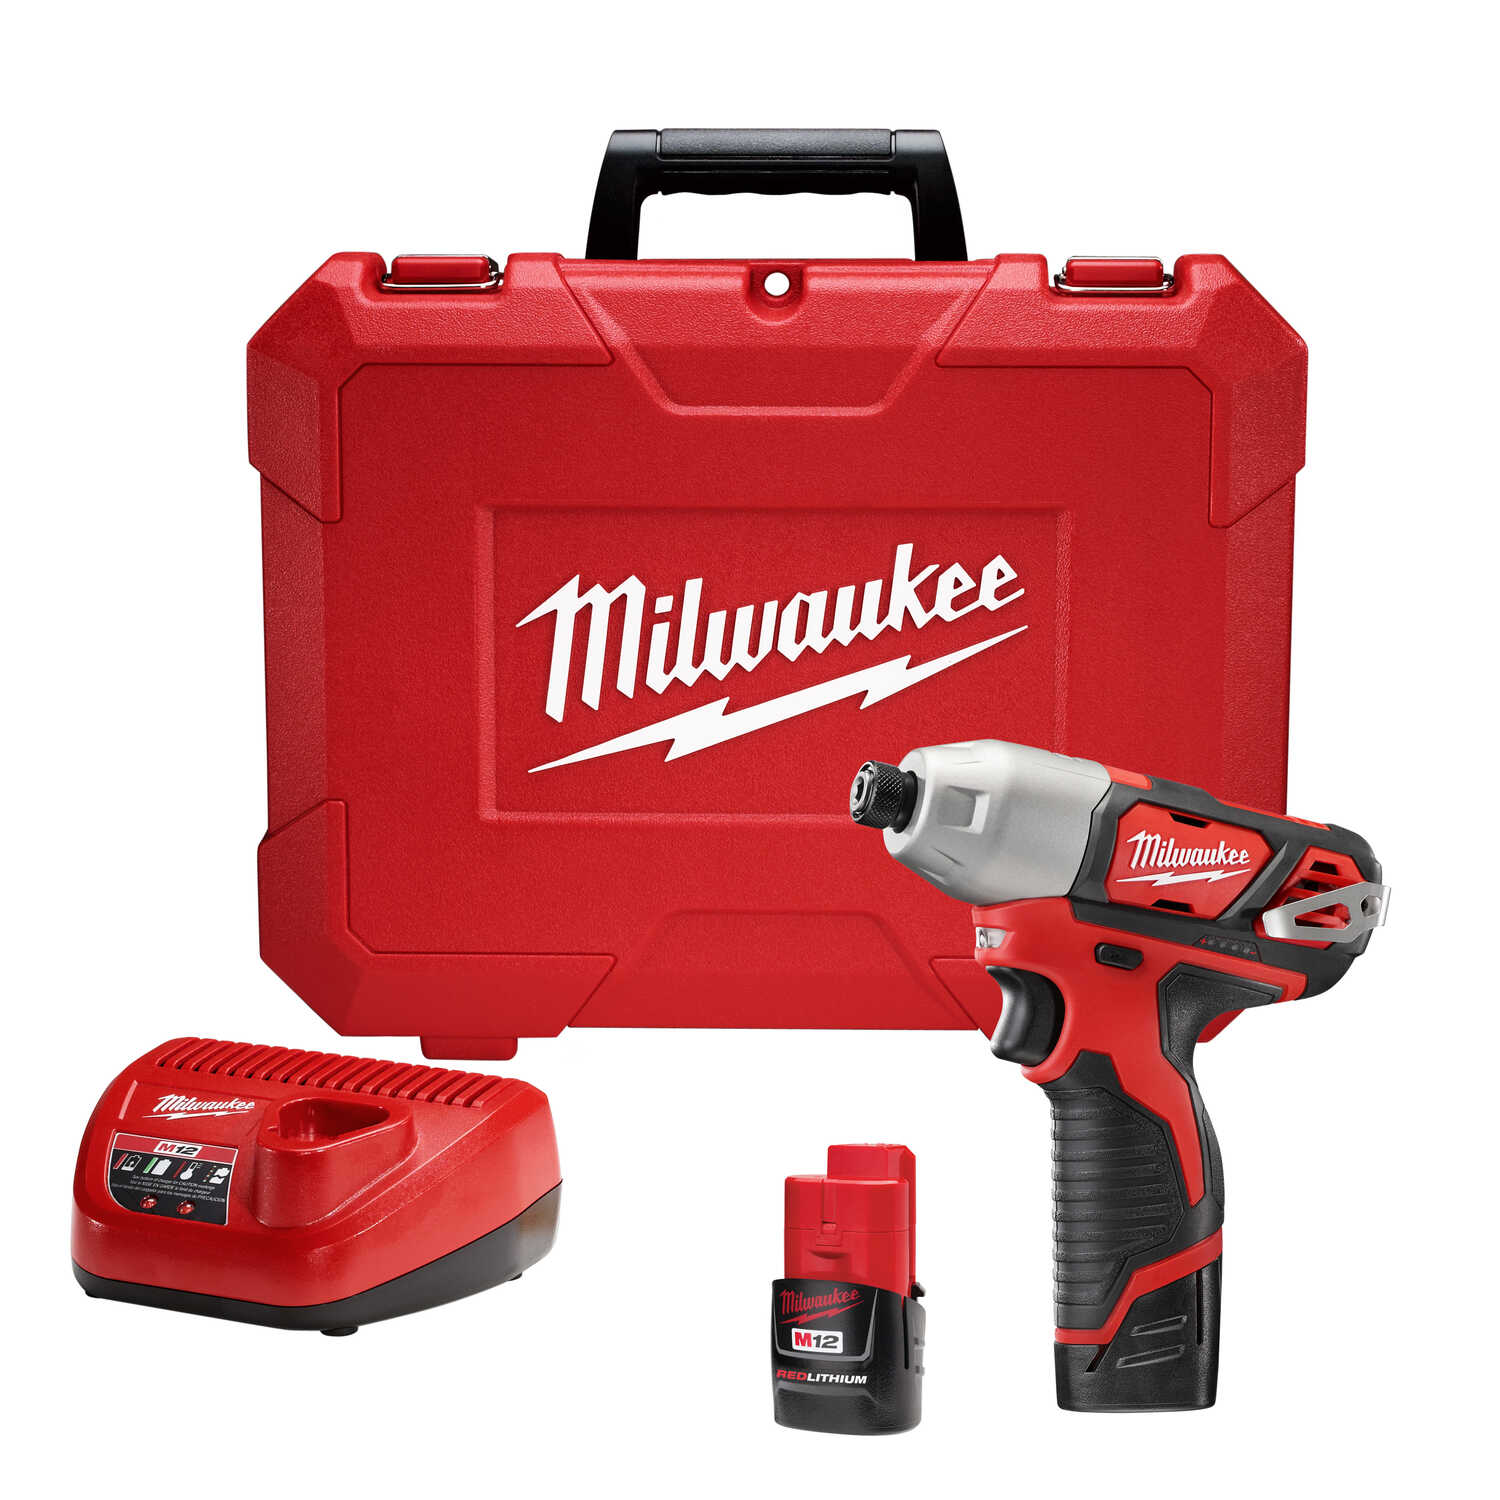 Milwaukee  M12  12 volt 1/4 in. Hex  Cordless  Impact Driver  Kit 1000 in-lb